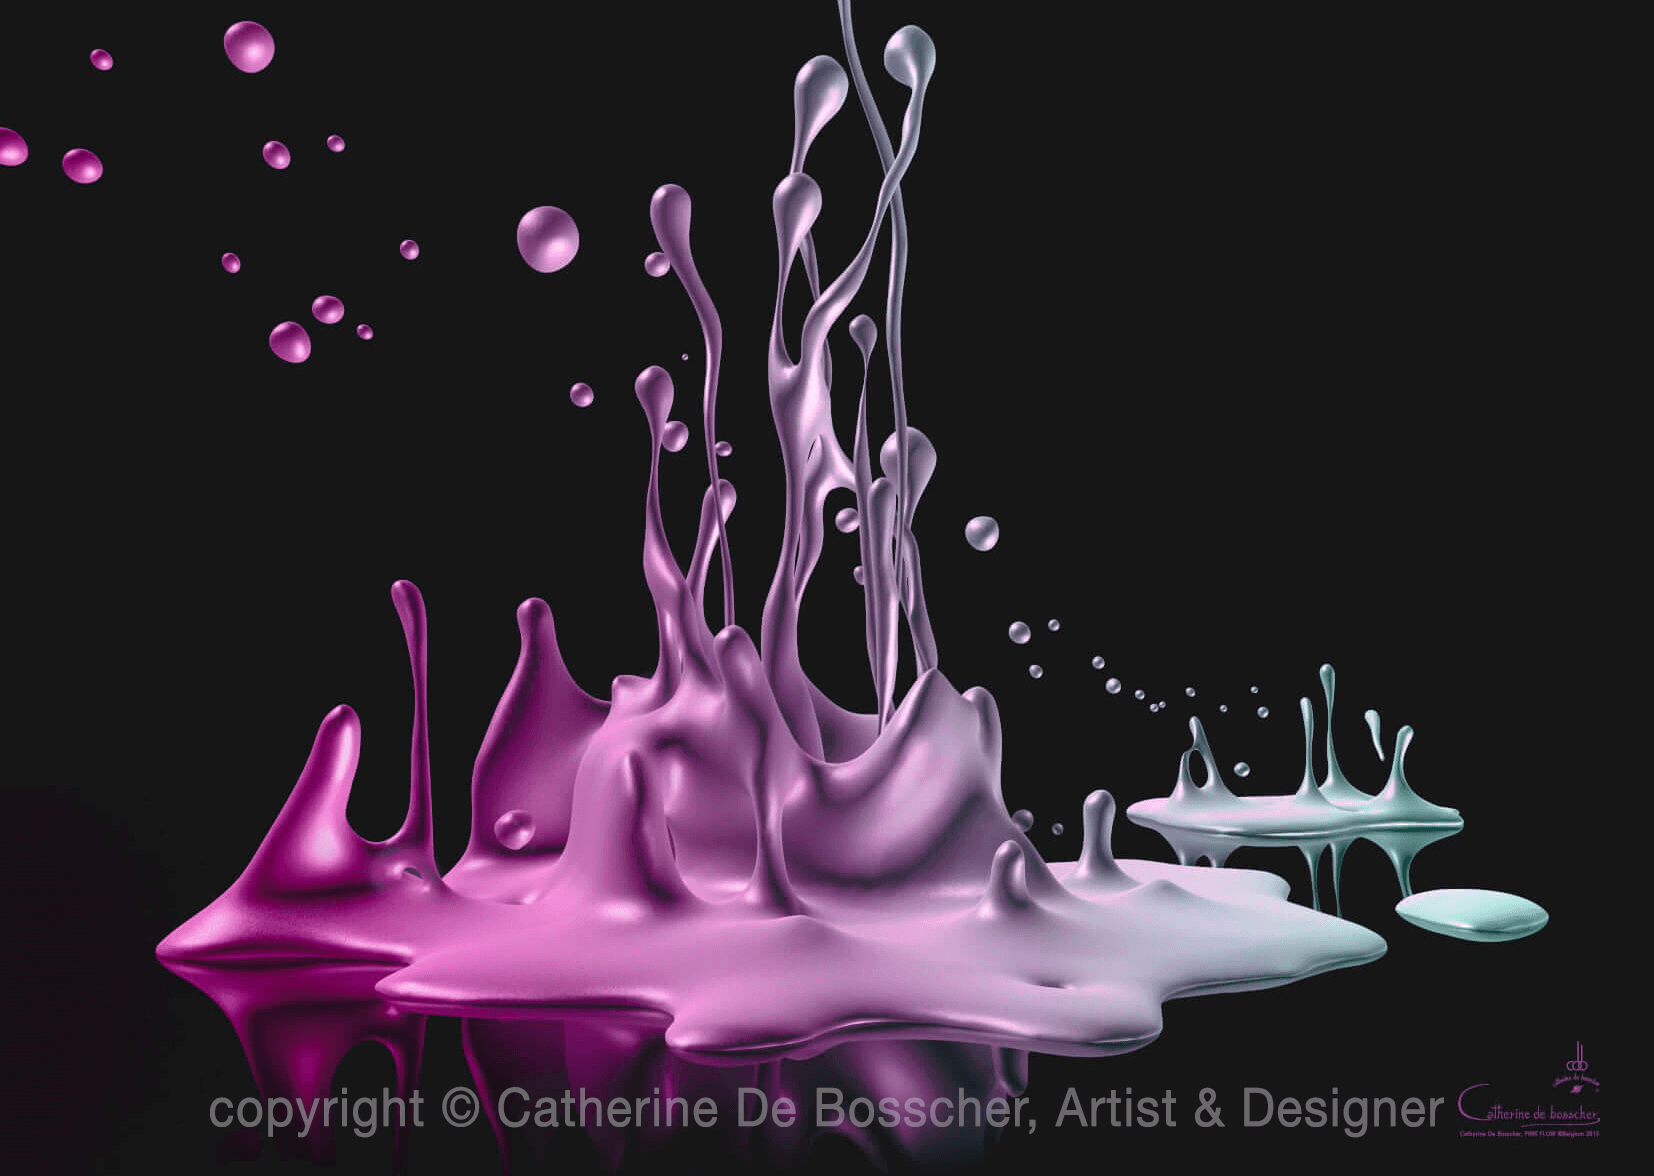 PINK FLOW Artwork 140 x 100 cm or 112 x 80 cm by Catherine De Bosscher